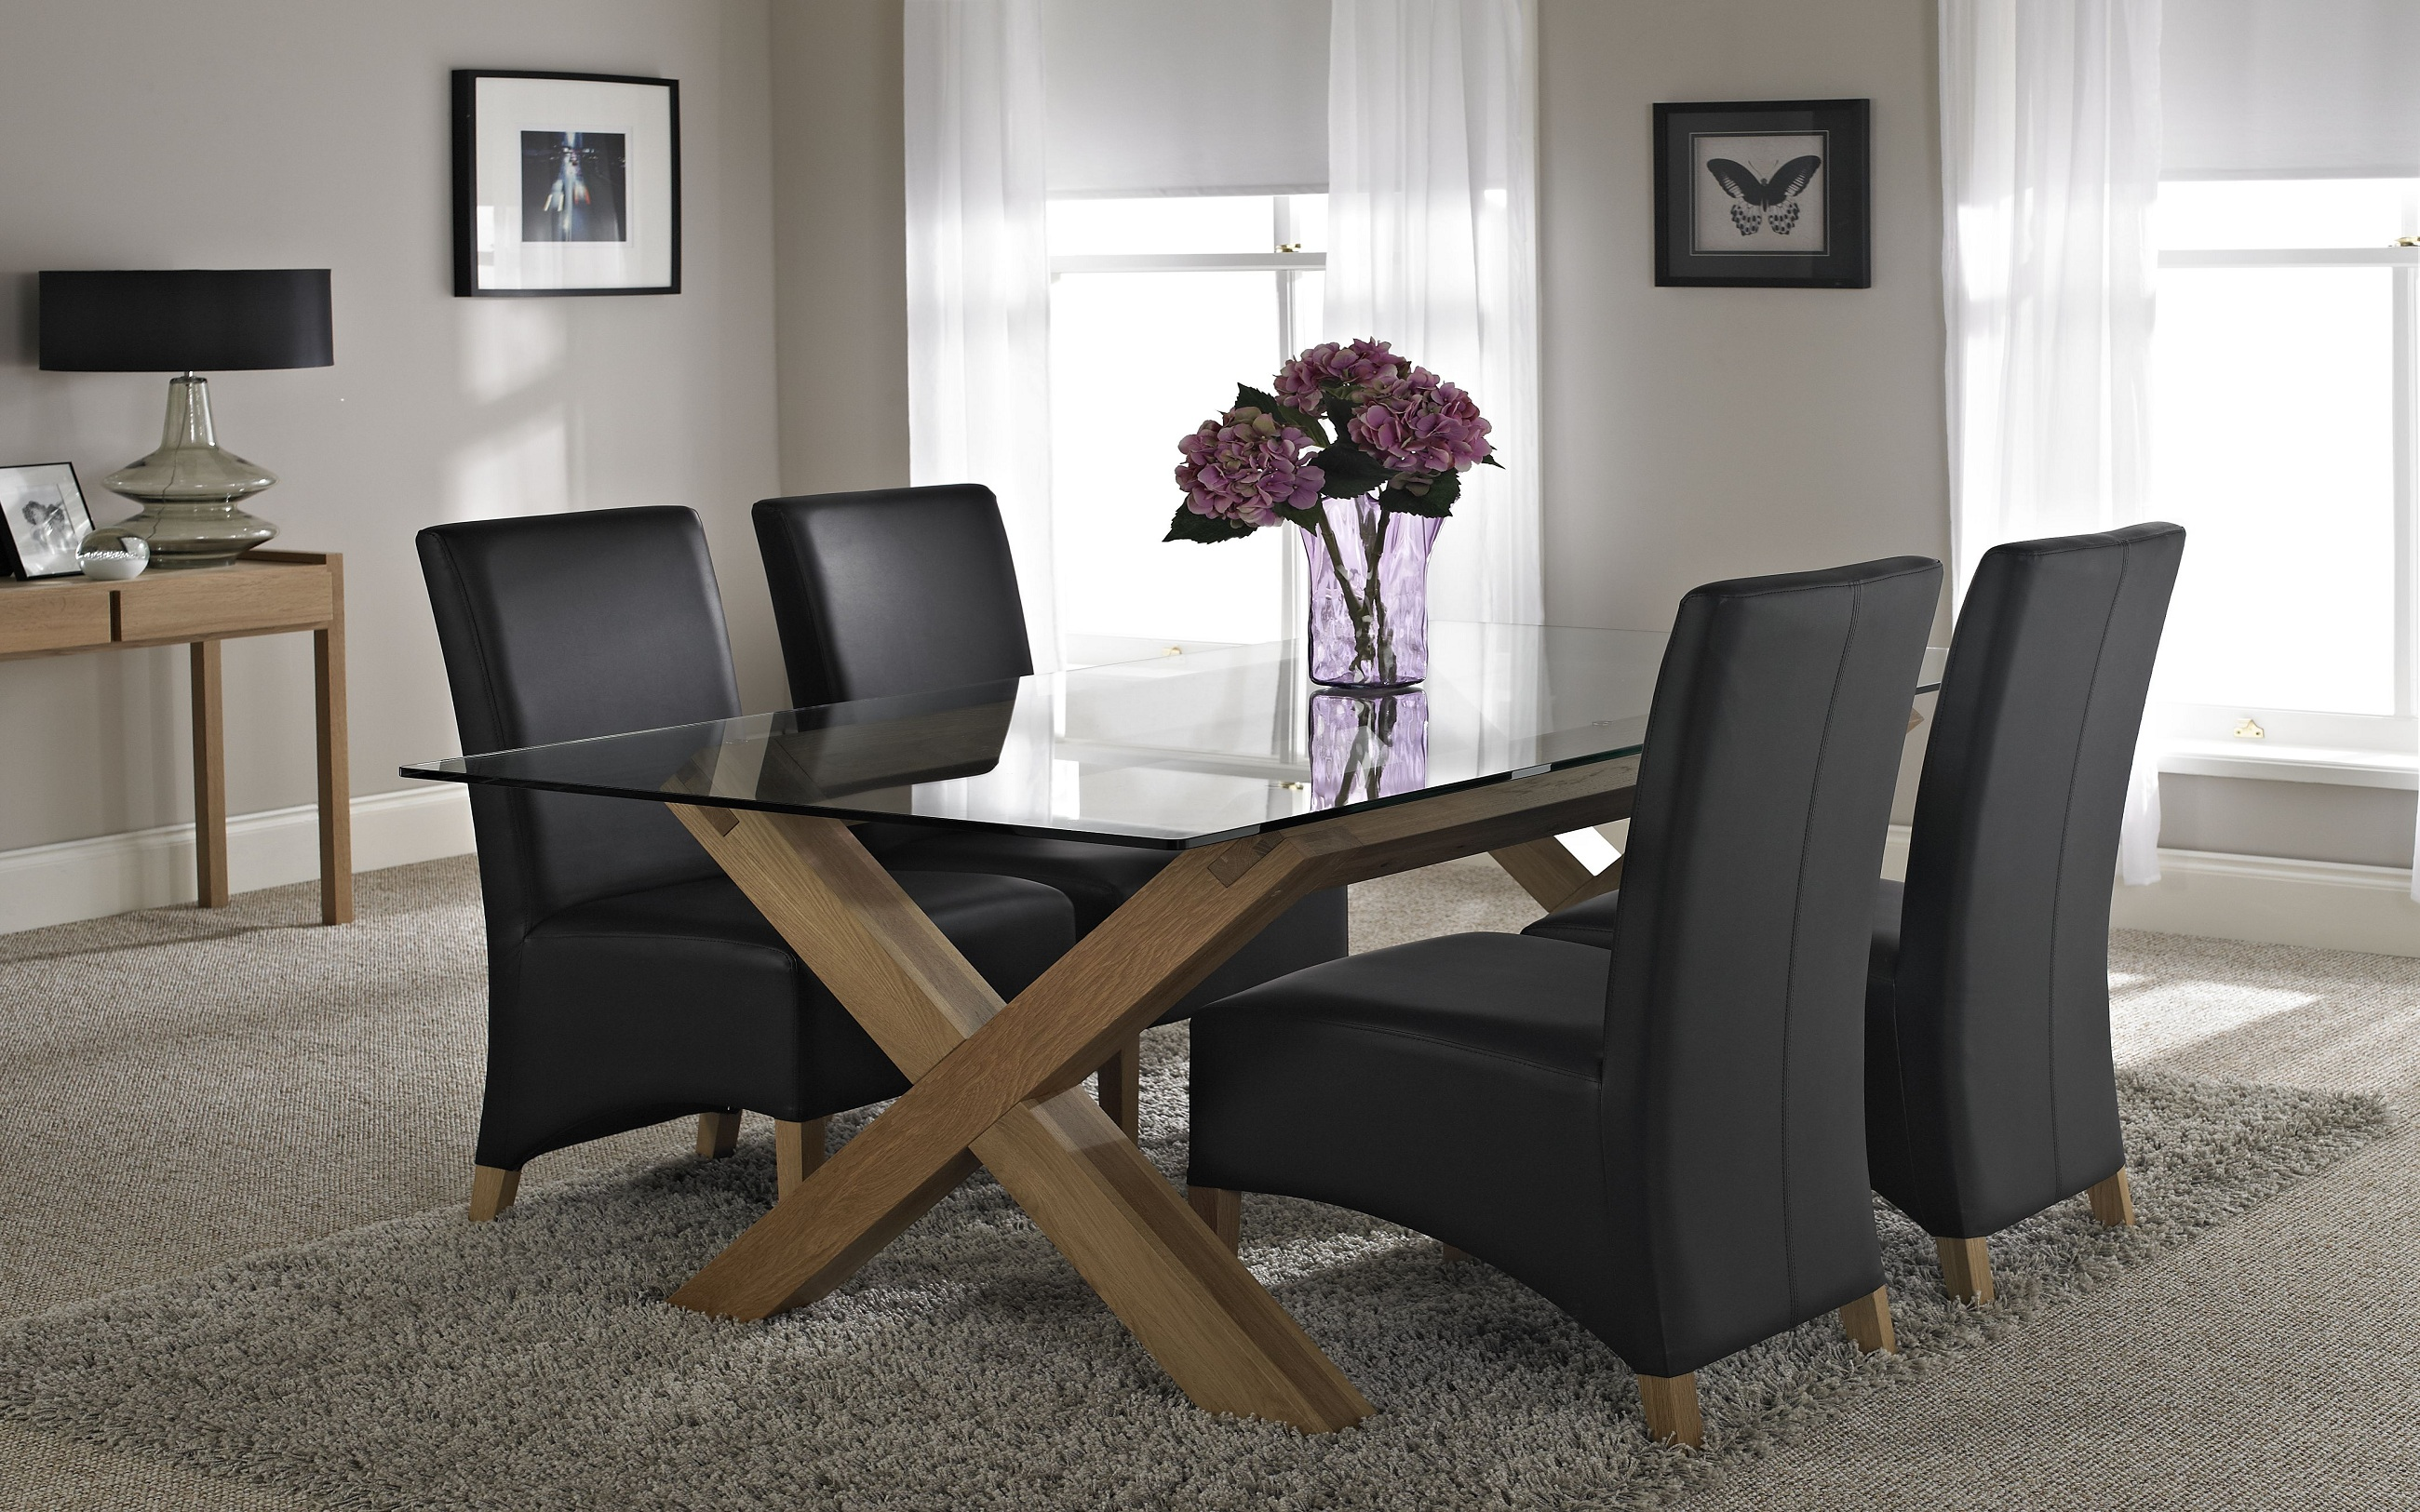 glass dining tables buying guide vale furnishers blog. Black Bedroom Furniture Sets. Home Design Ideas